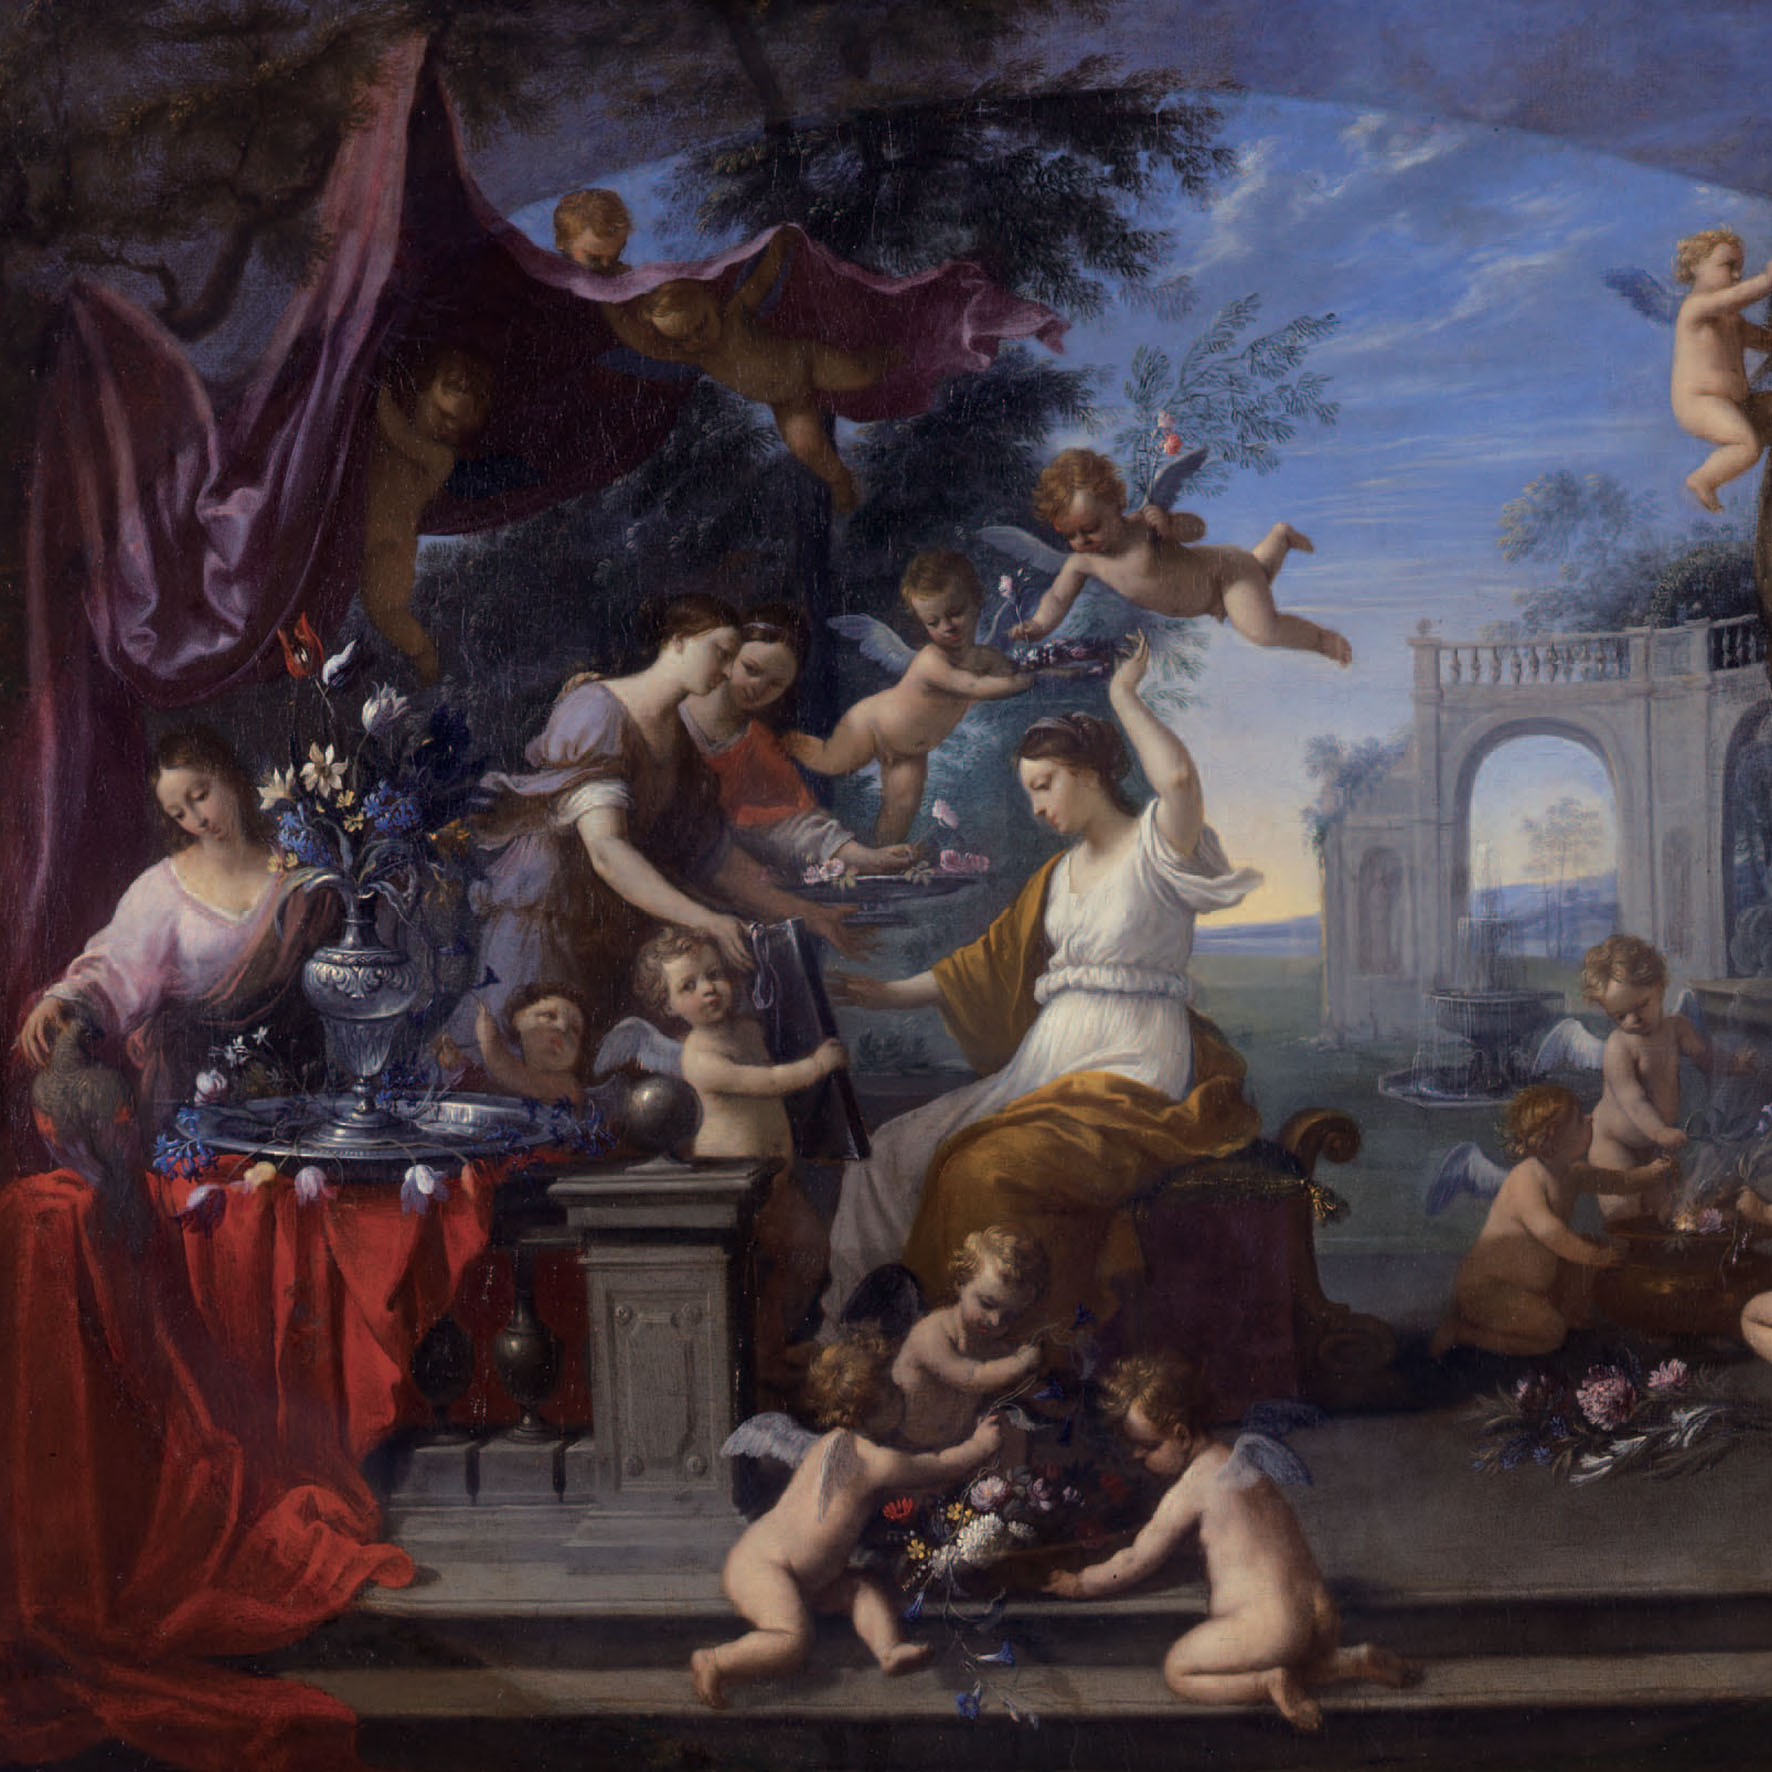 SPLENDOR OF EUROPEAN PAINTING EUROPEAN ART FROM THE XVI AND XVIII CENTURIES FROM THE GALLERIA SABAUDA